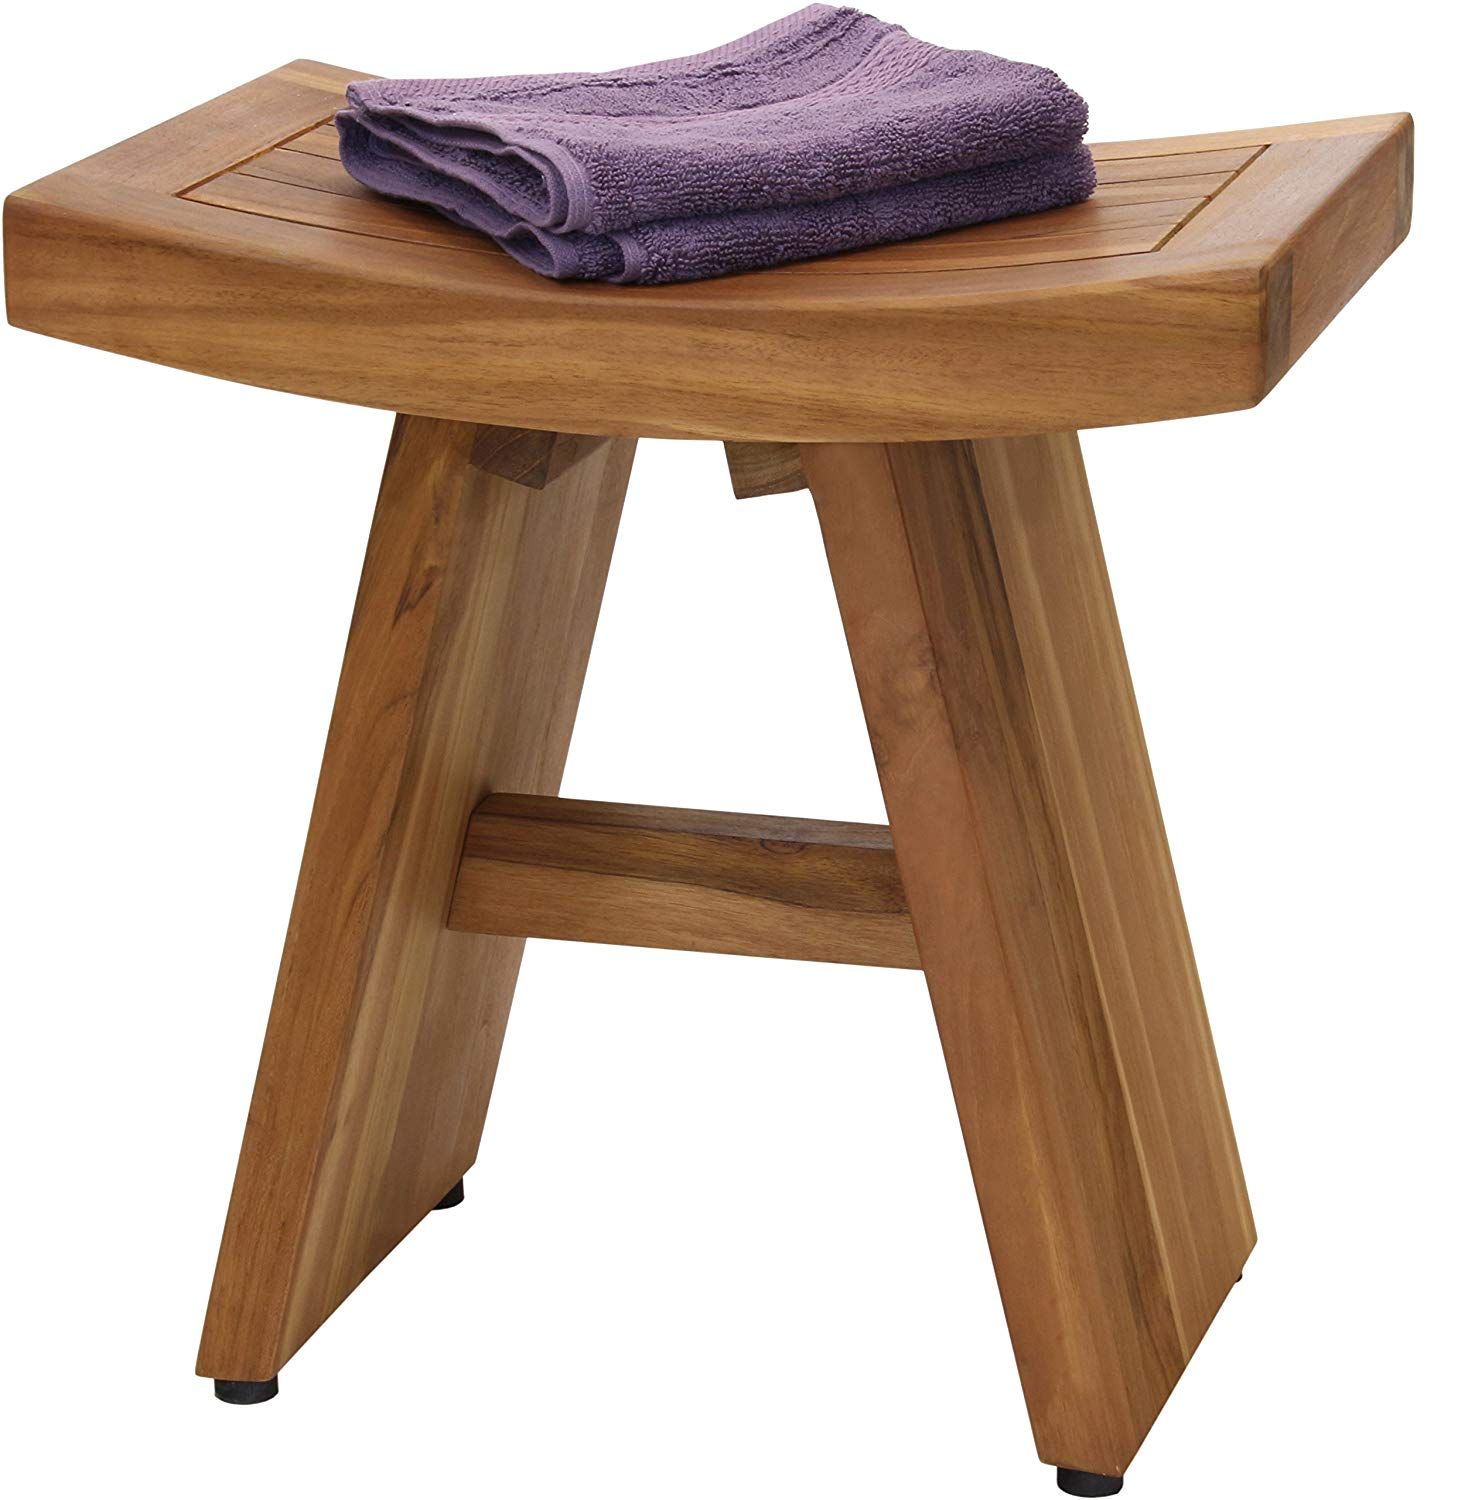 Best Teak Shower Bench And Stool 2019 Buying Guide Teak Patio Furniture World